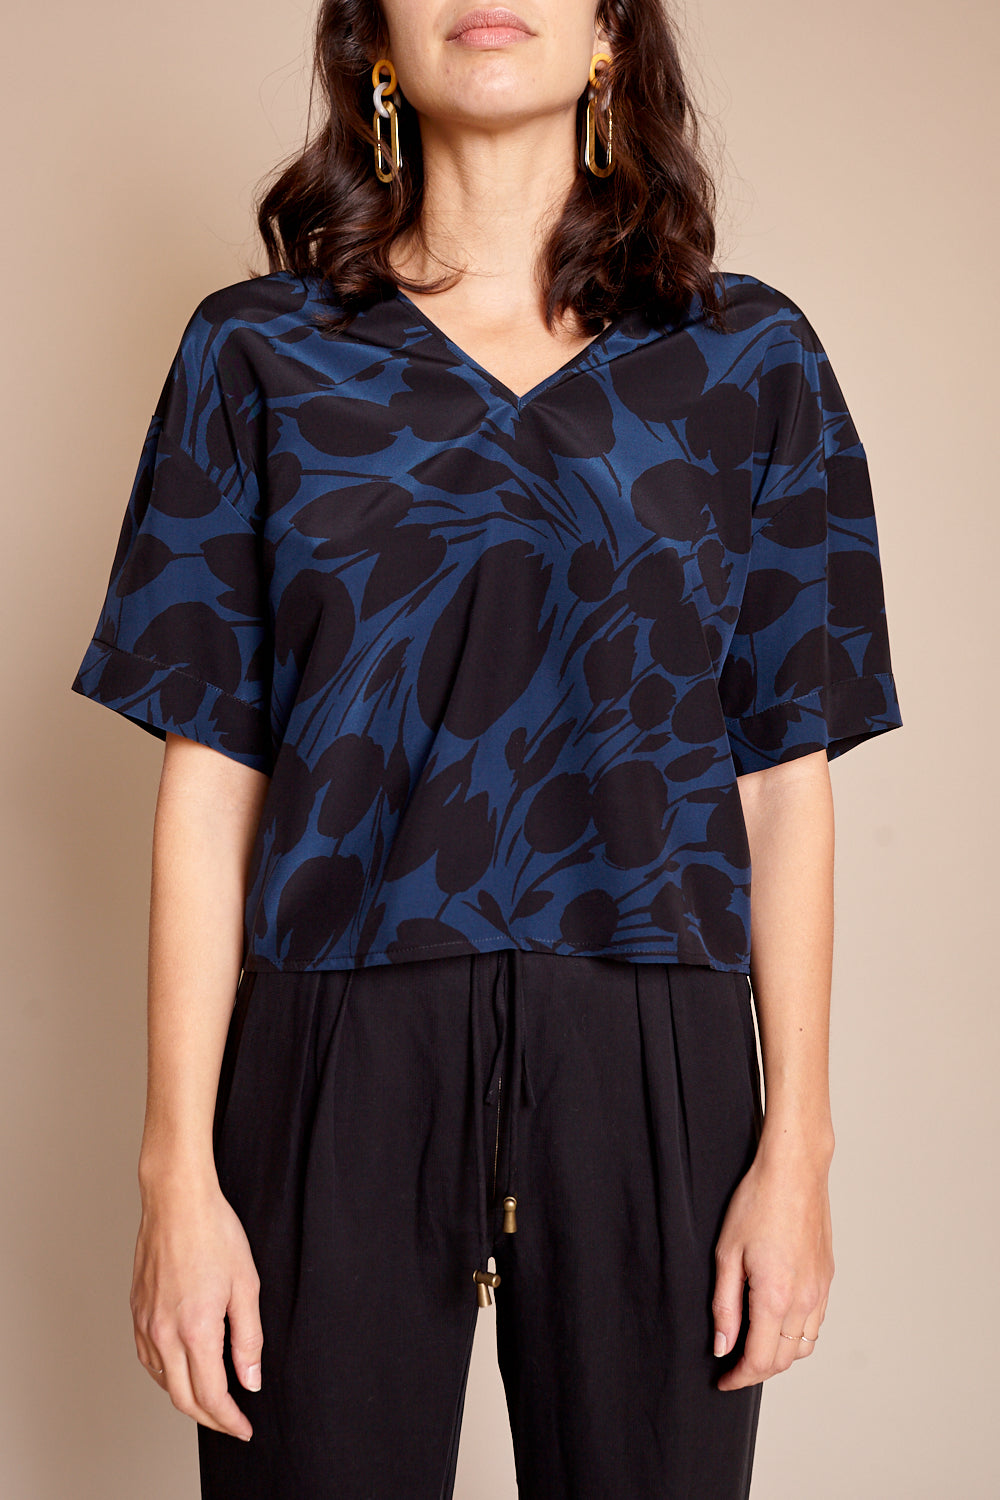 Diamond V Neck Top in Black and Navy Tulip